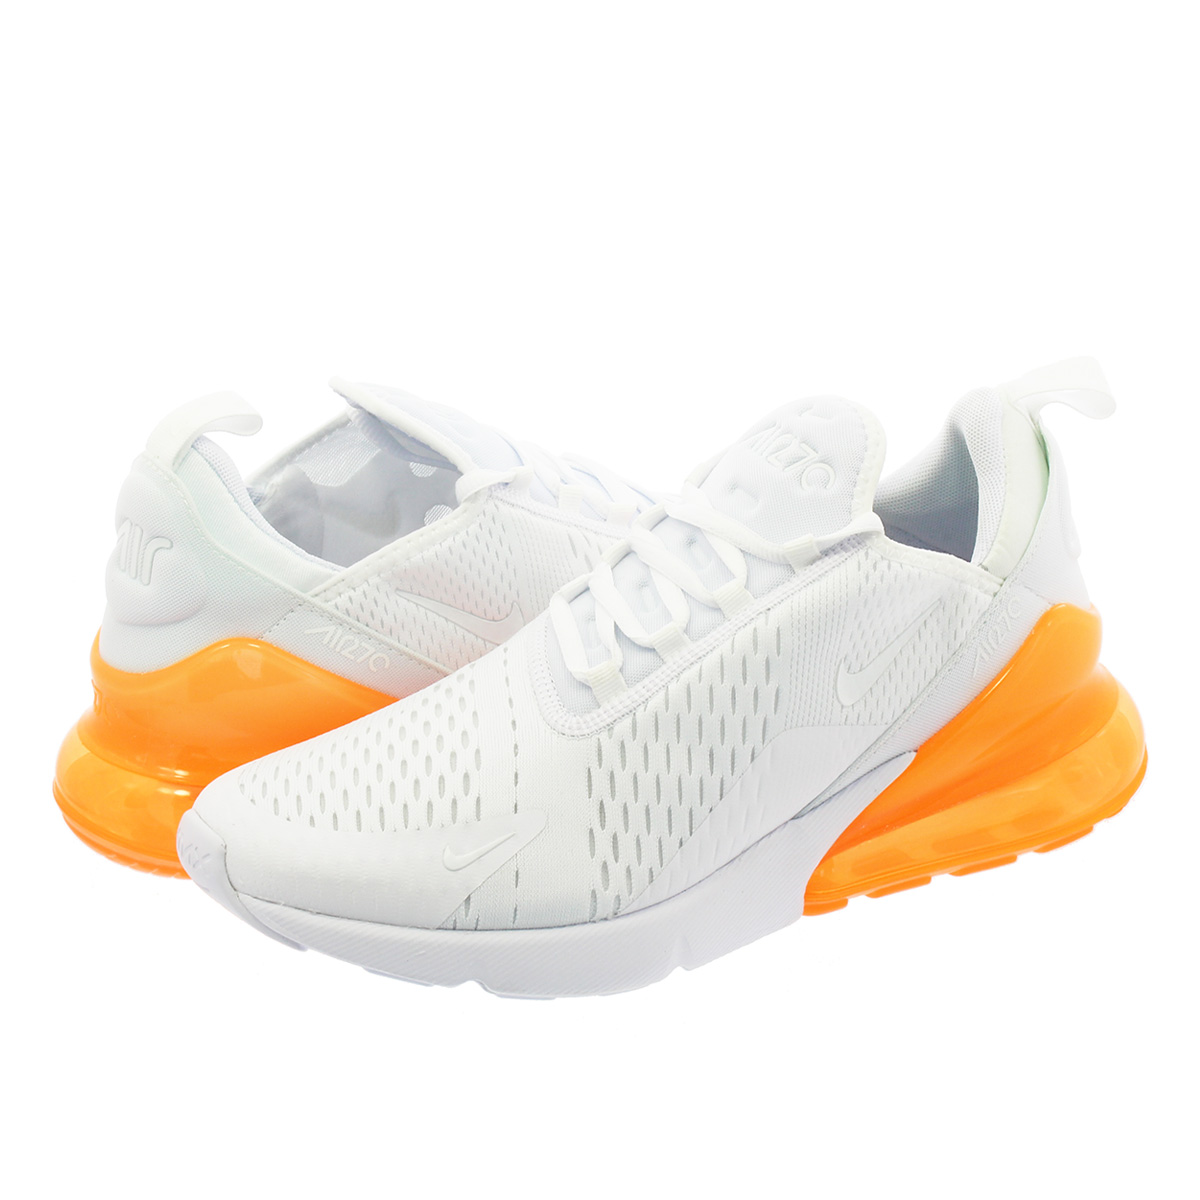 newest collection 0d9c7 8dc3f NIKE AIR MAX 270 Kie Ney AMAX 270 WHITE/TOTAL ORANGE ah8050-102